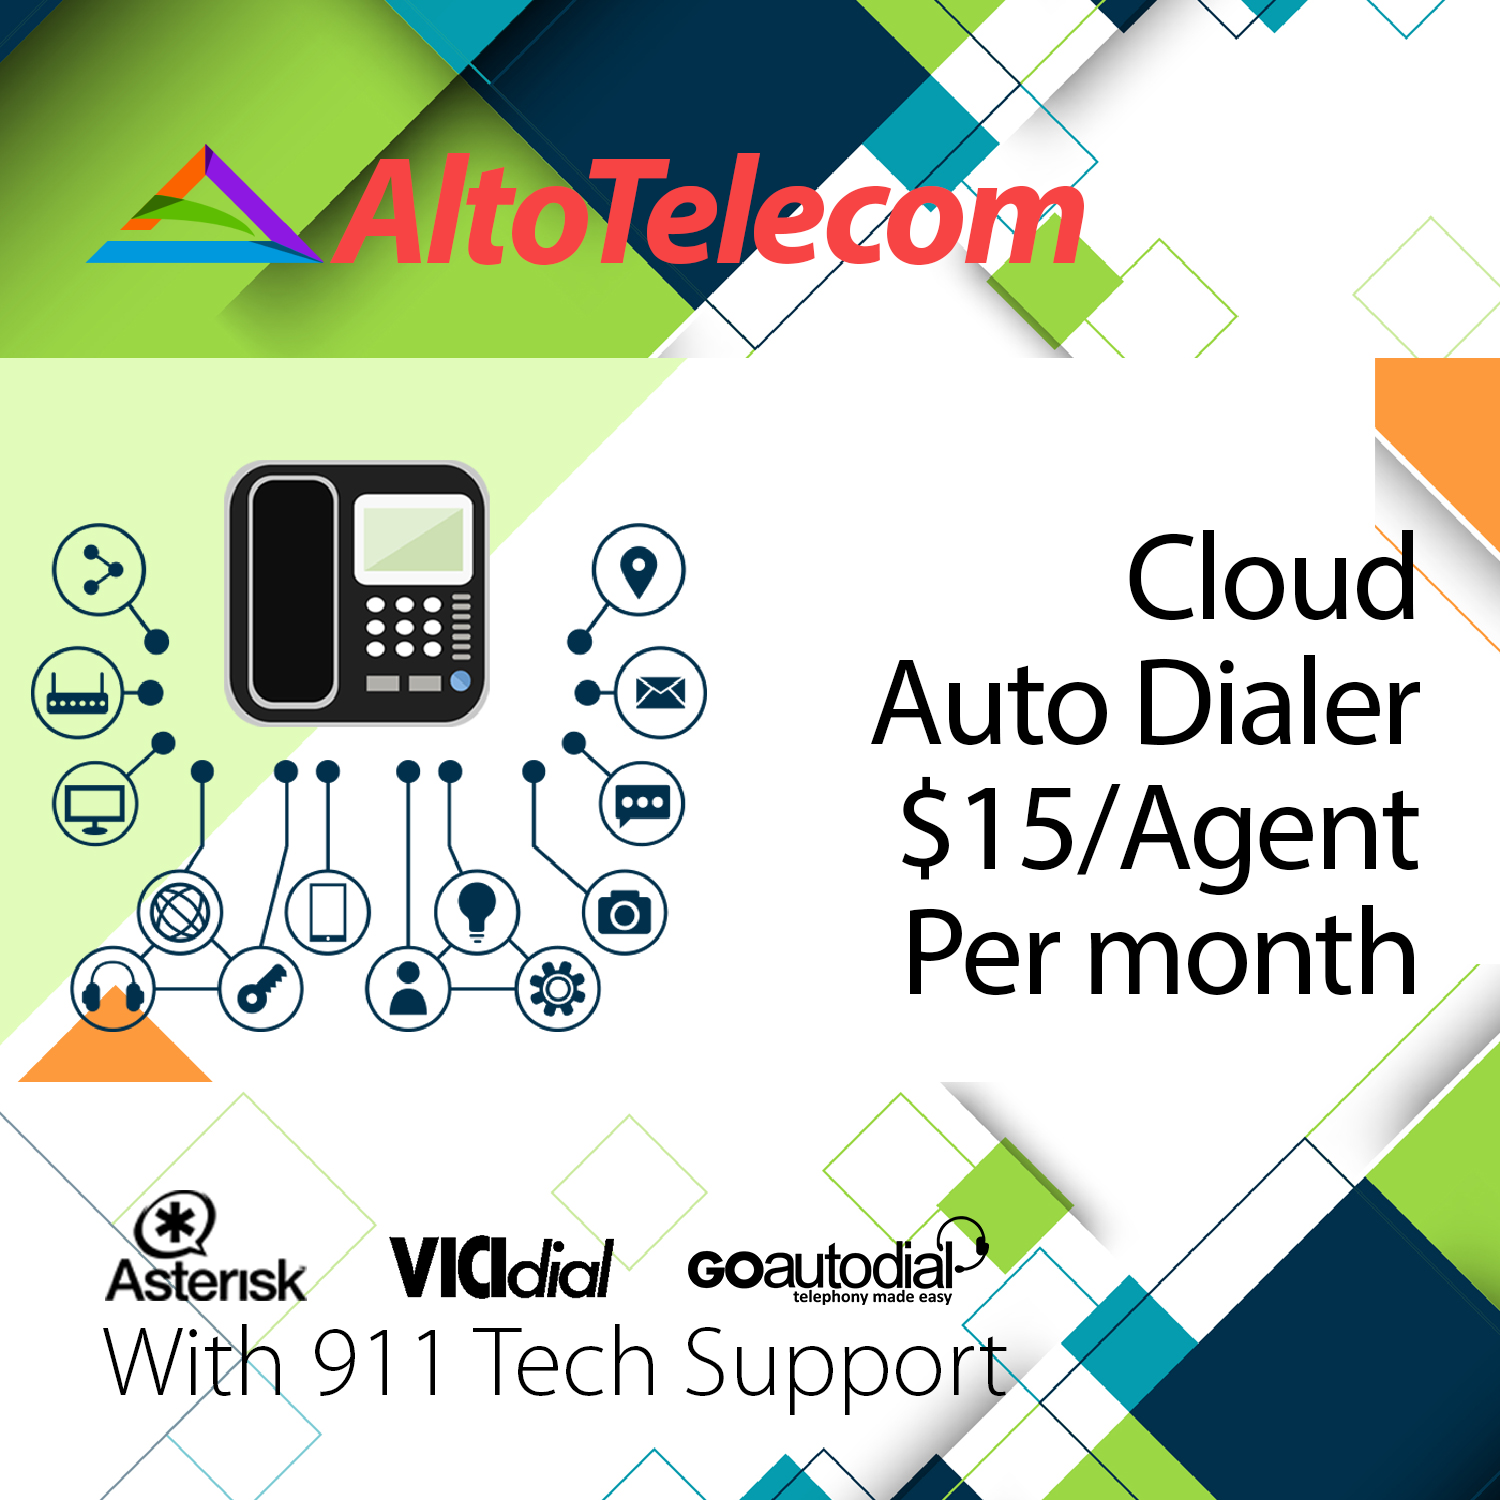 Cloud Auto Dialer Vicidial